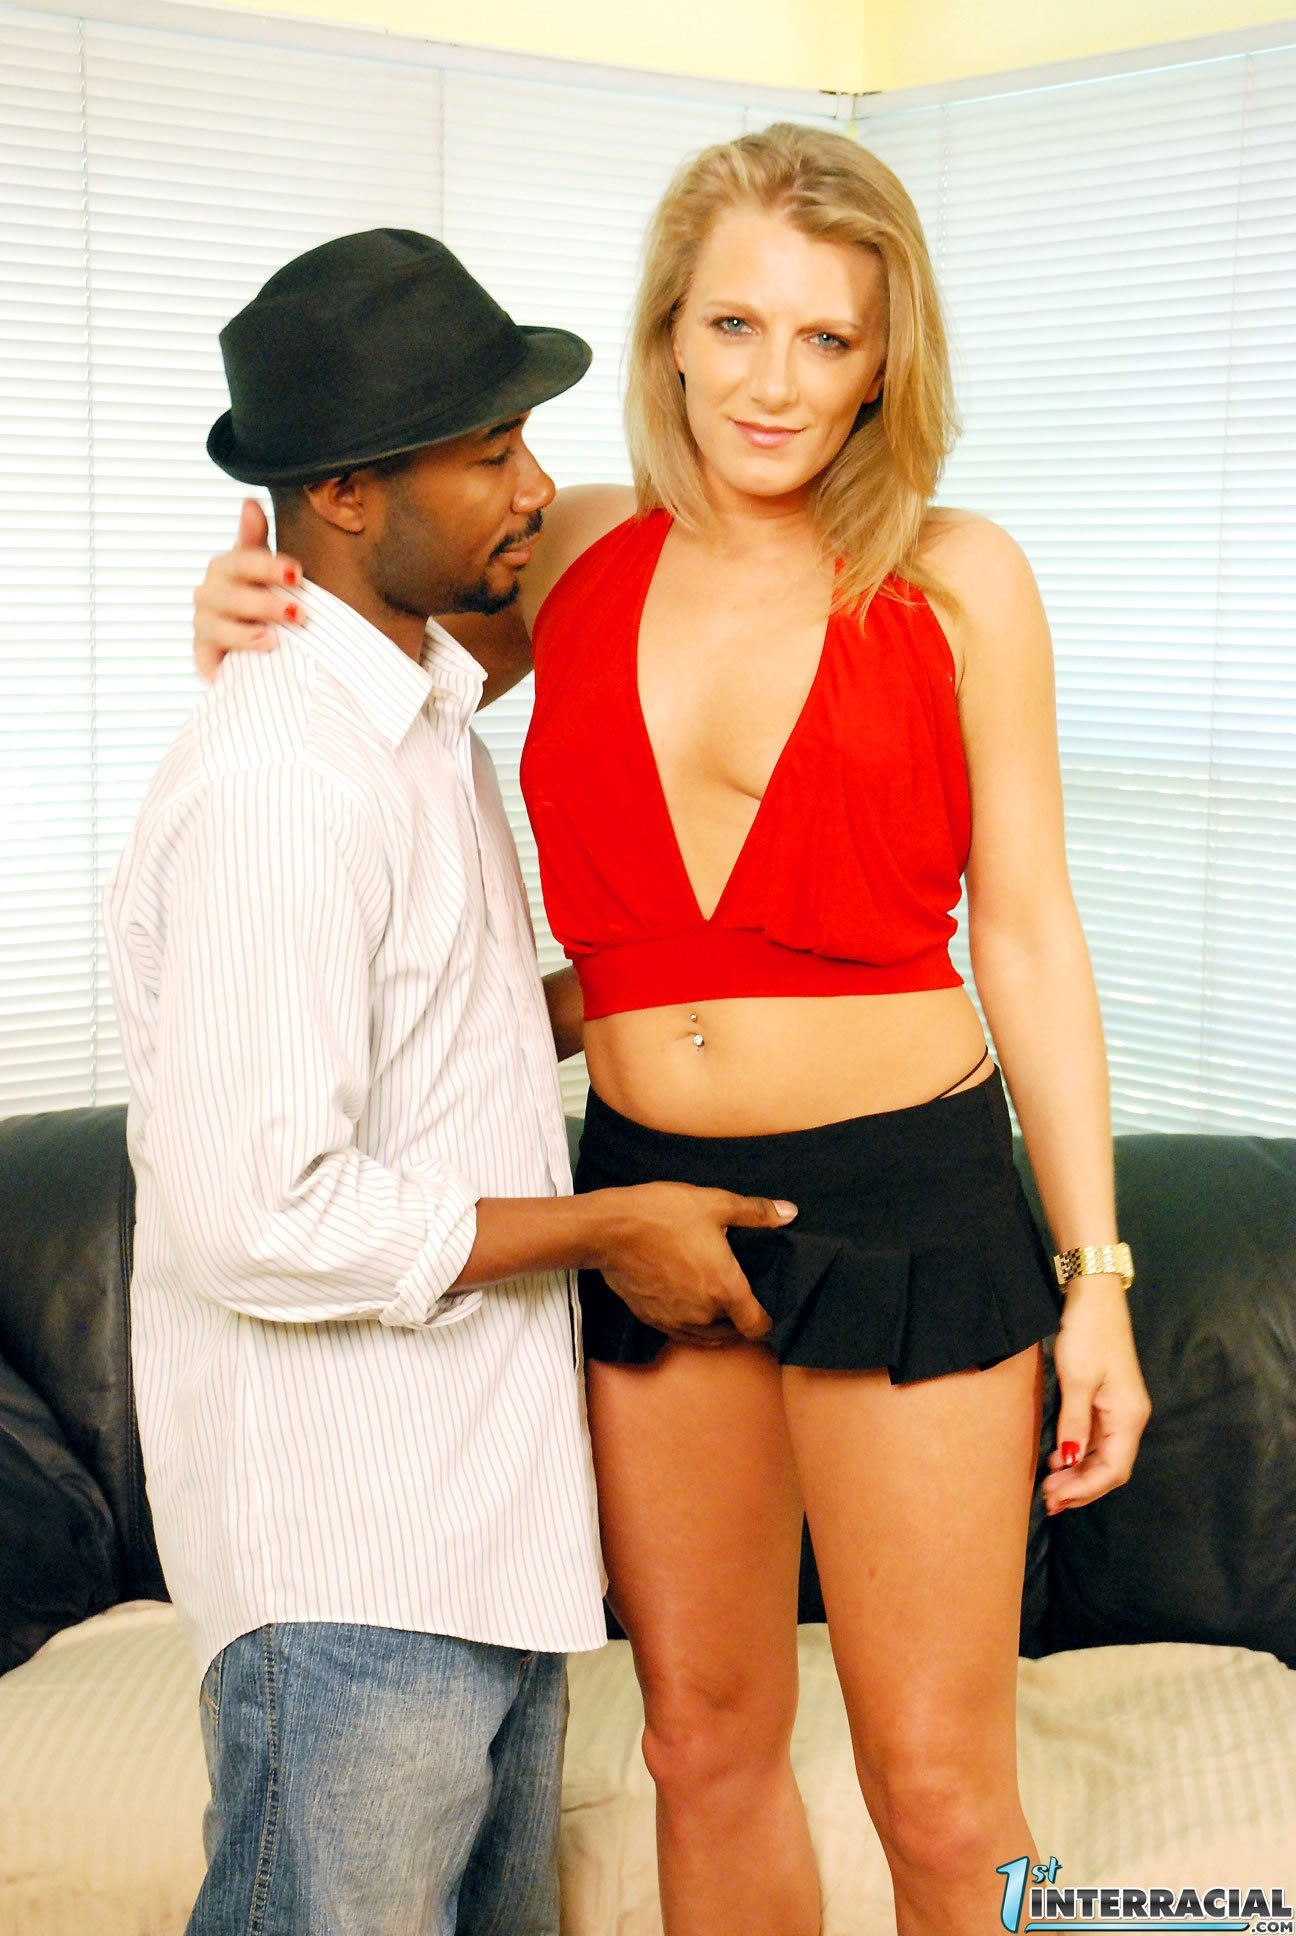 Xnxx videos interracial #1